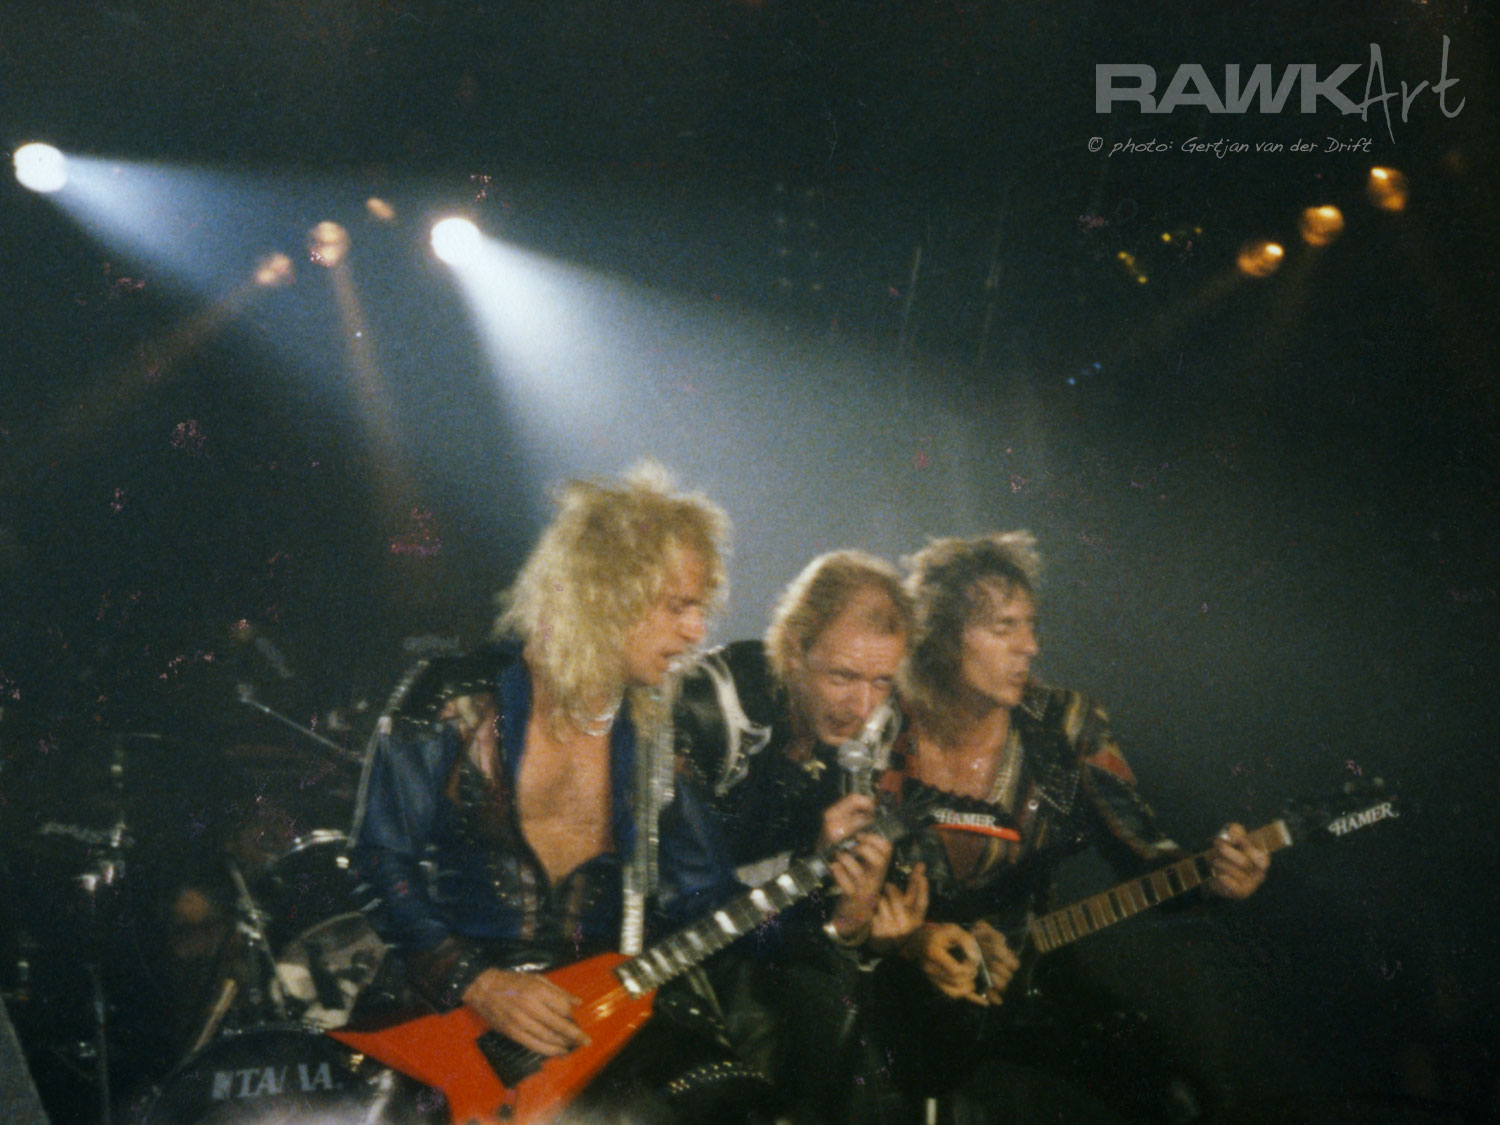 Judas Priest at IJsselhallen, Zwolle, Netherlands 1986, Fuel For Life